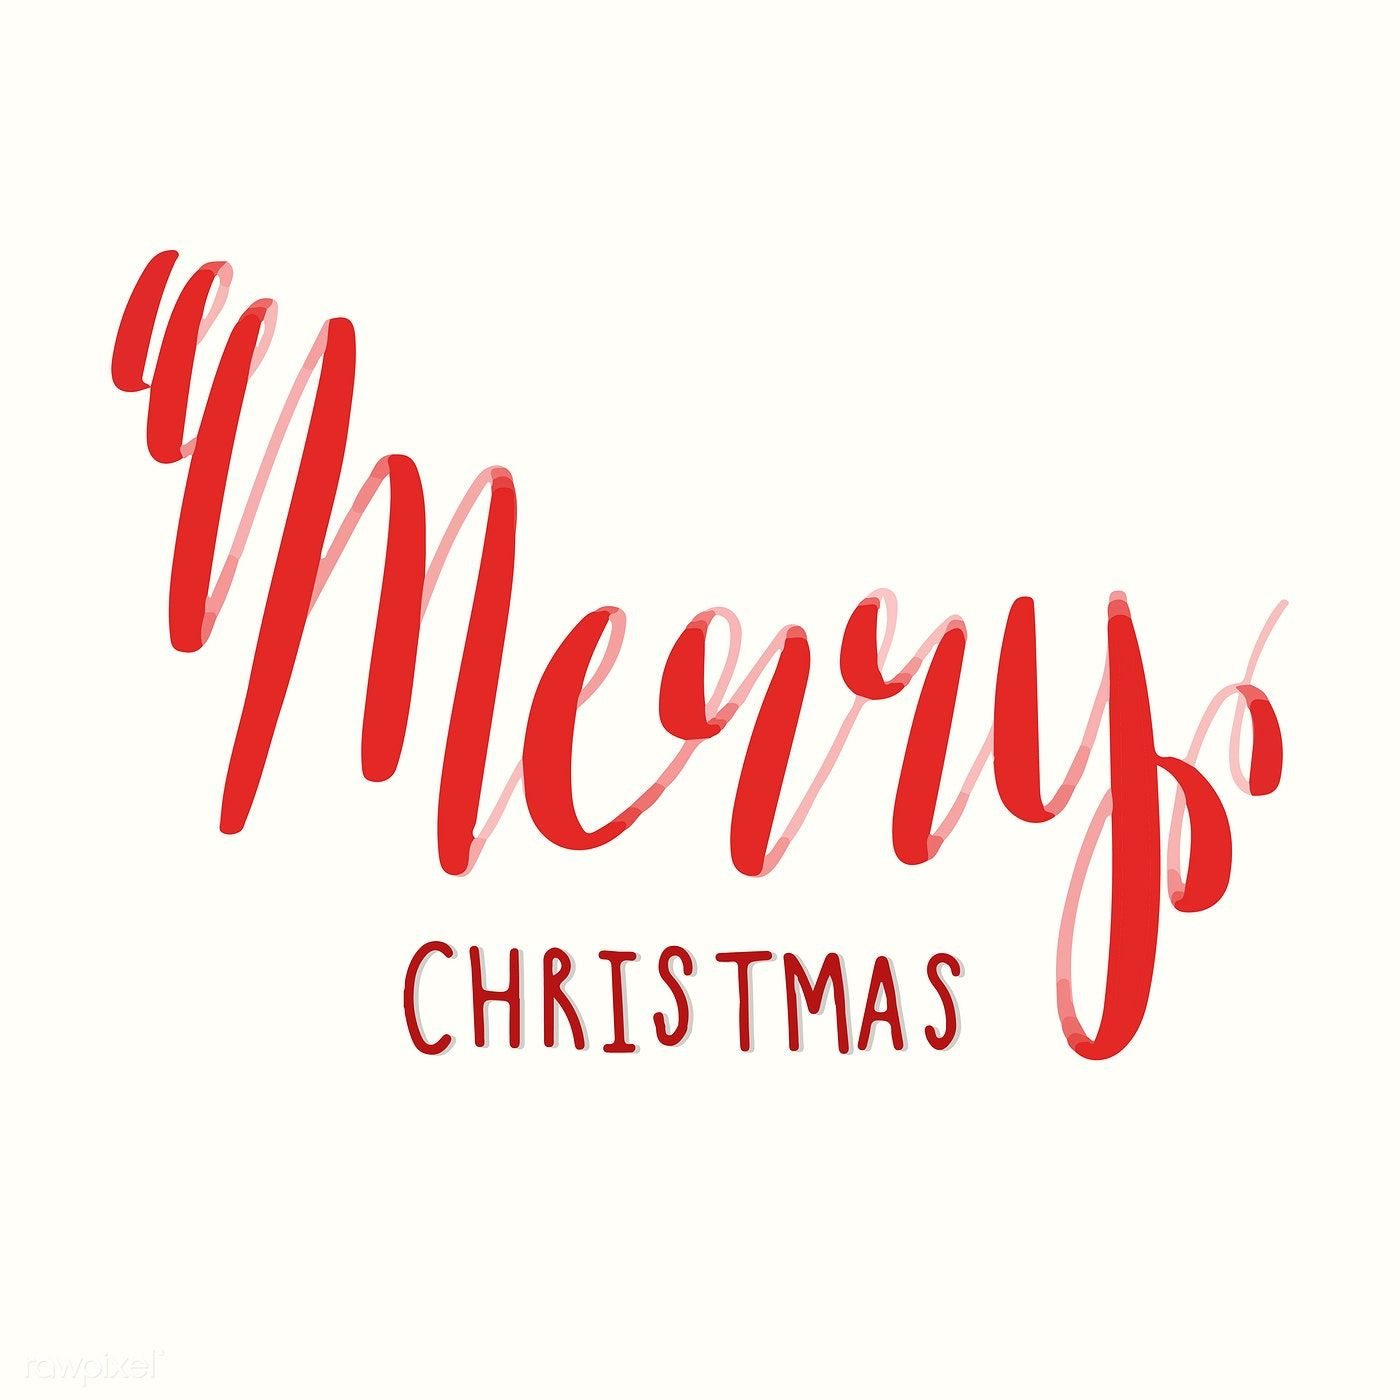 Merry Christmas typography vector in red | free image by rawpixel ...